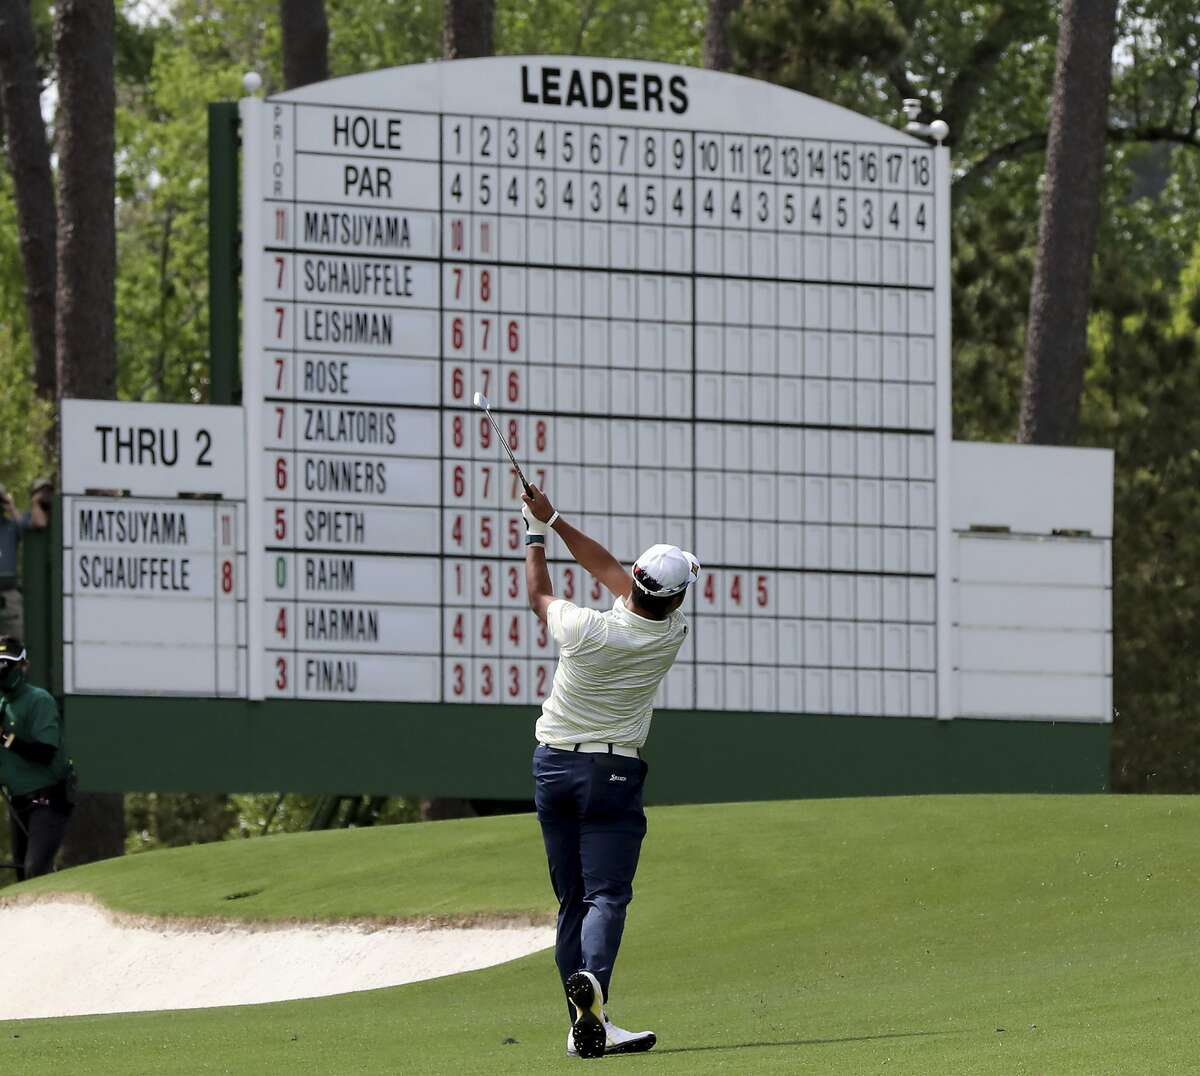 Hideki Matsuyama hits his second shot in the third fairway during the final round of the Masters golf tournament at Augusta National, Sunday, April 11, 2021, in Augusta, Ga.